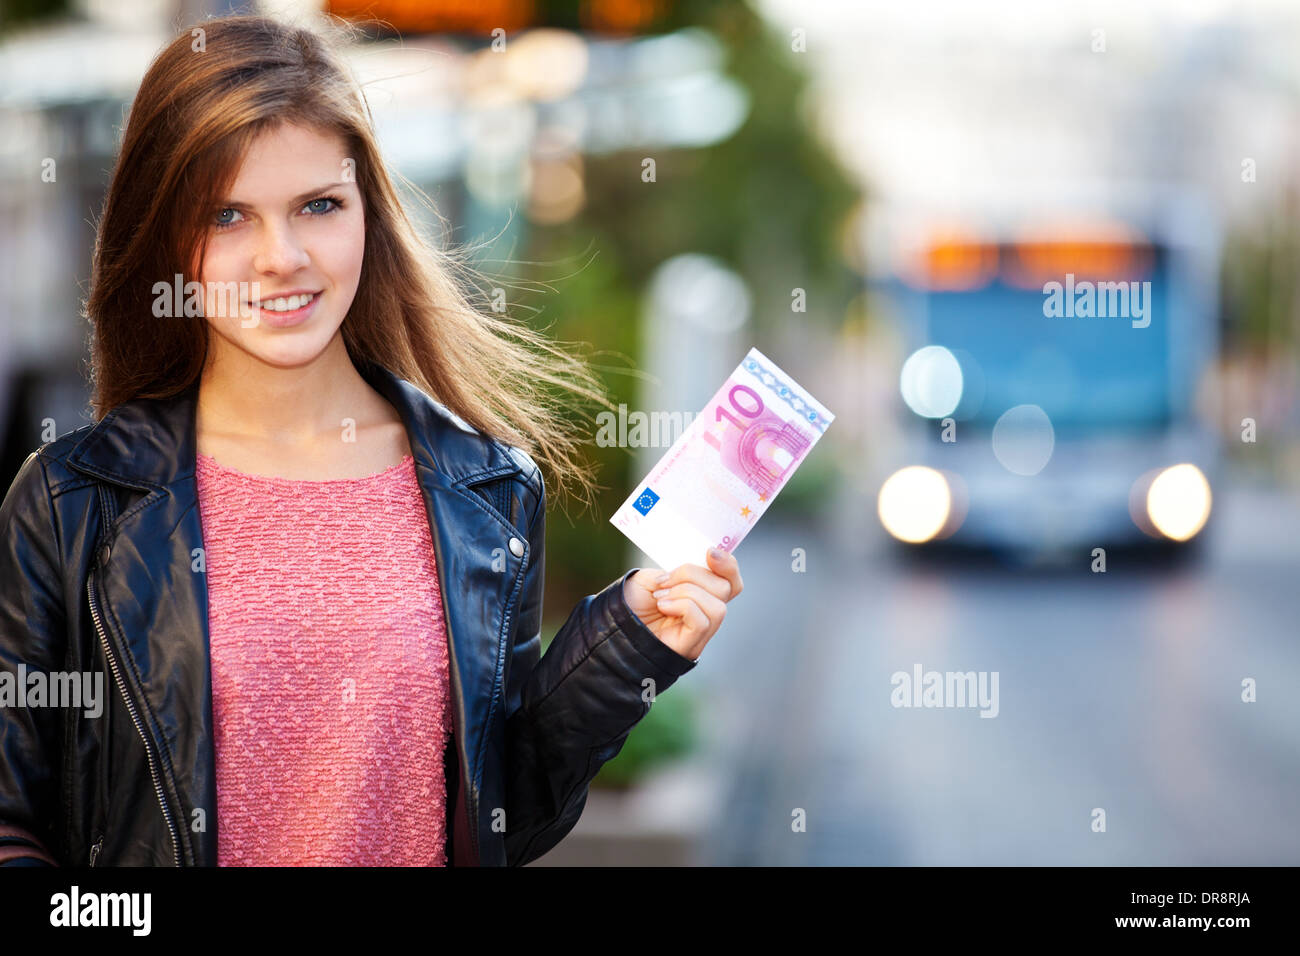 Teenage girl at the bus stop holding euro note - Stock Image